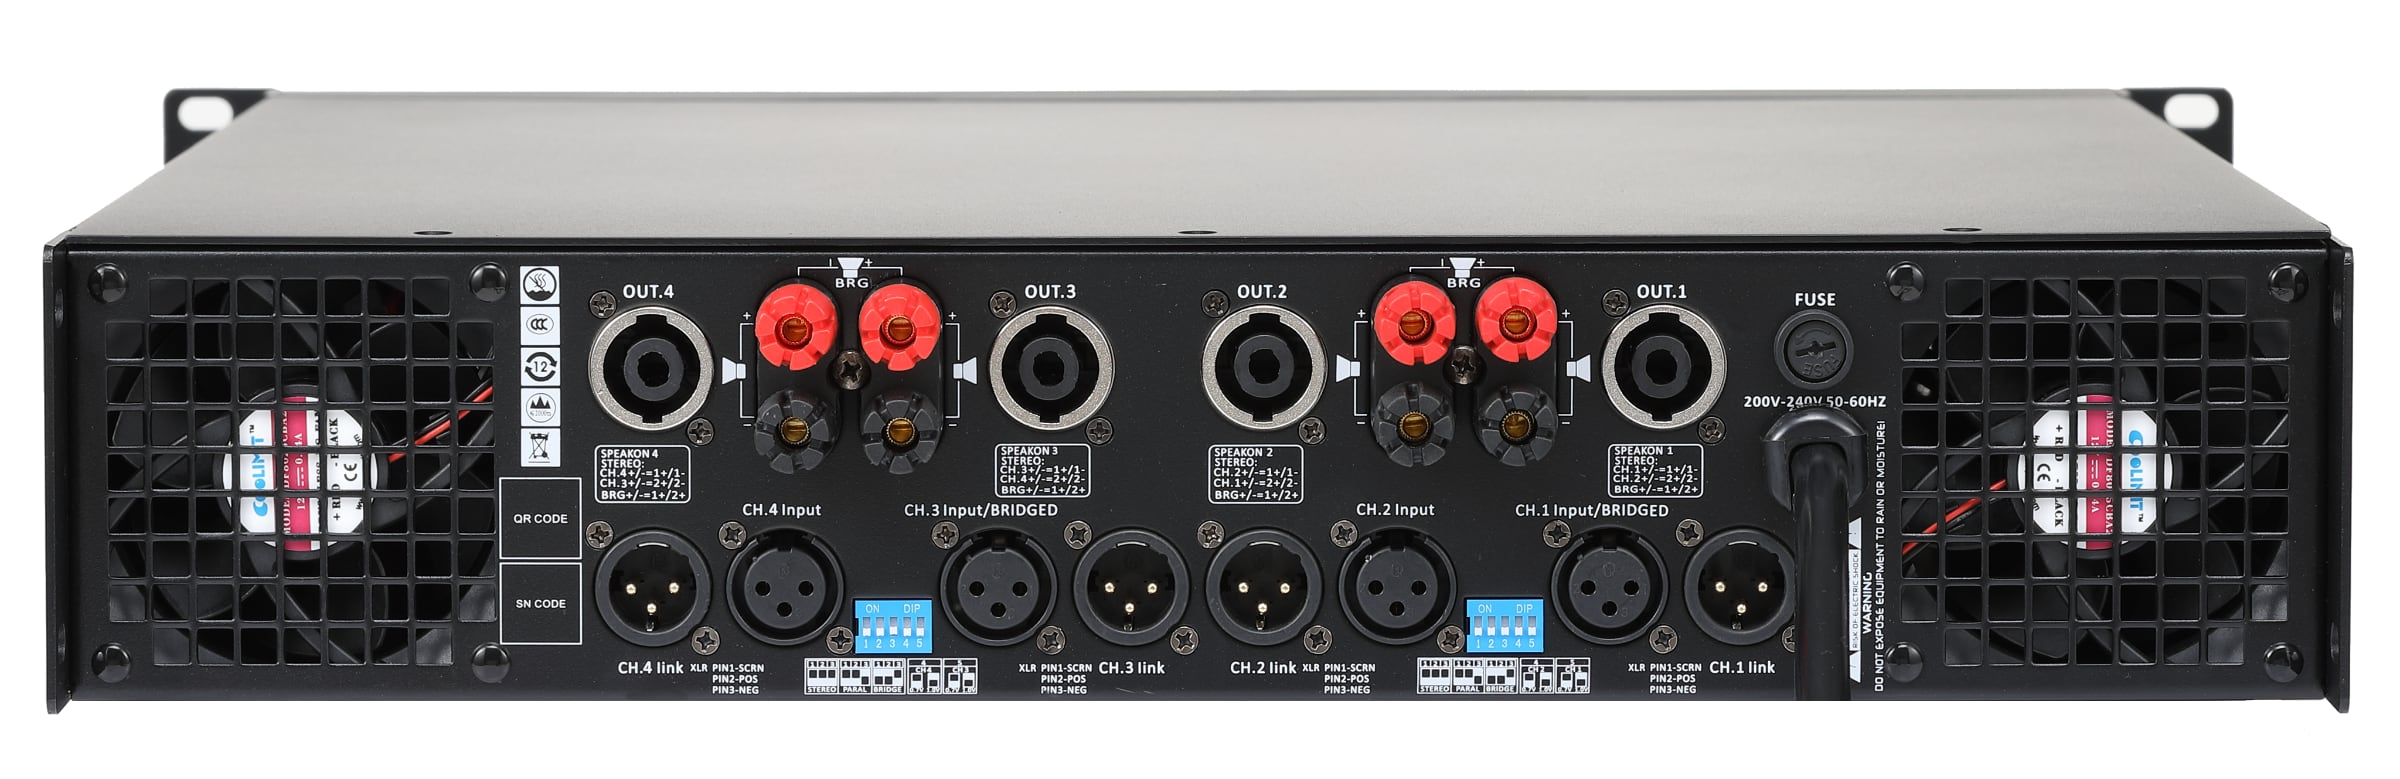 Công suất AAP DX-6004